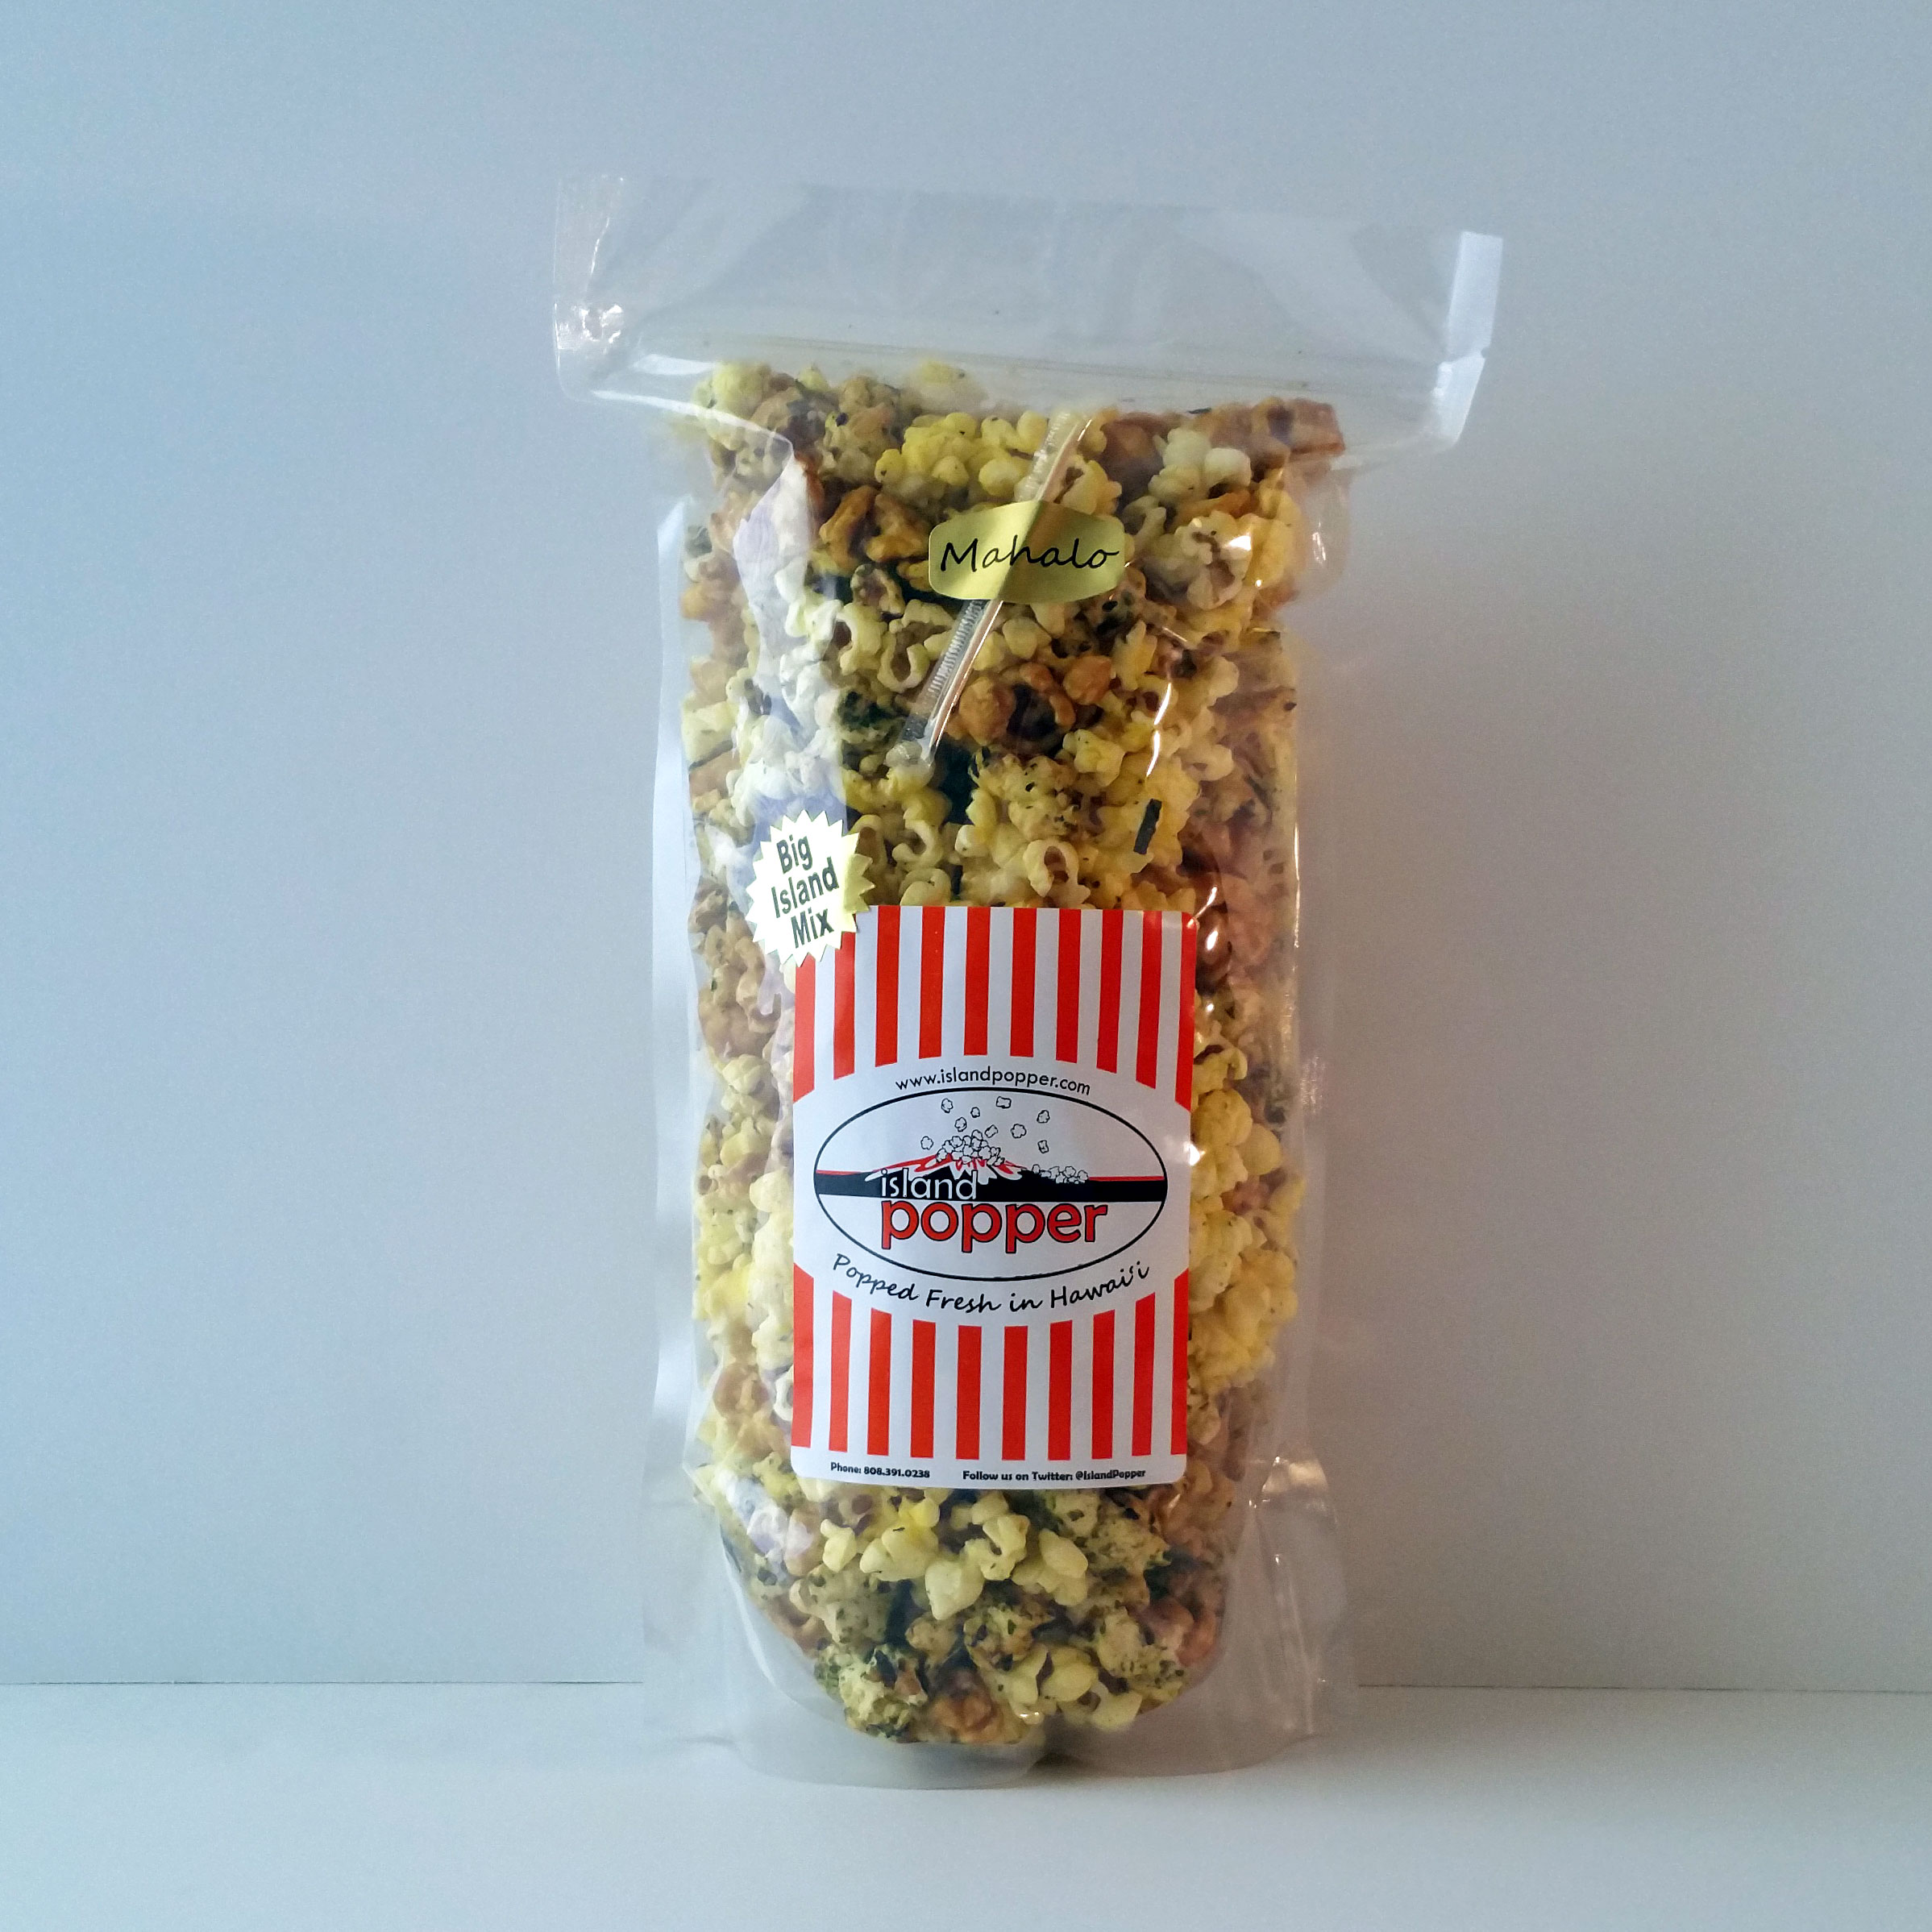 Big Island Mix Combines our rich Caramel, Original Furikake and Organic Butter